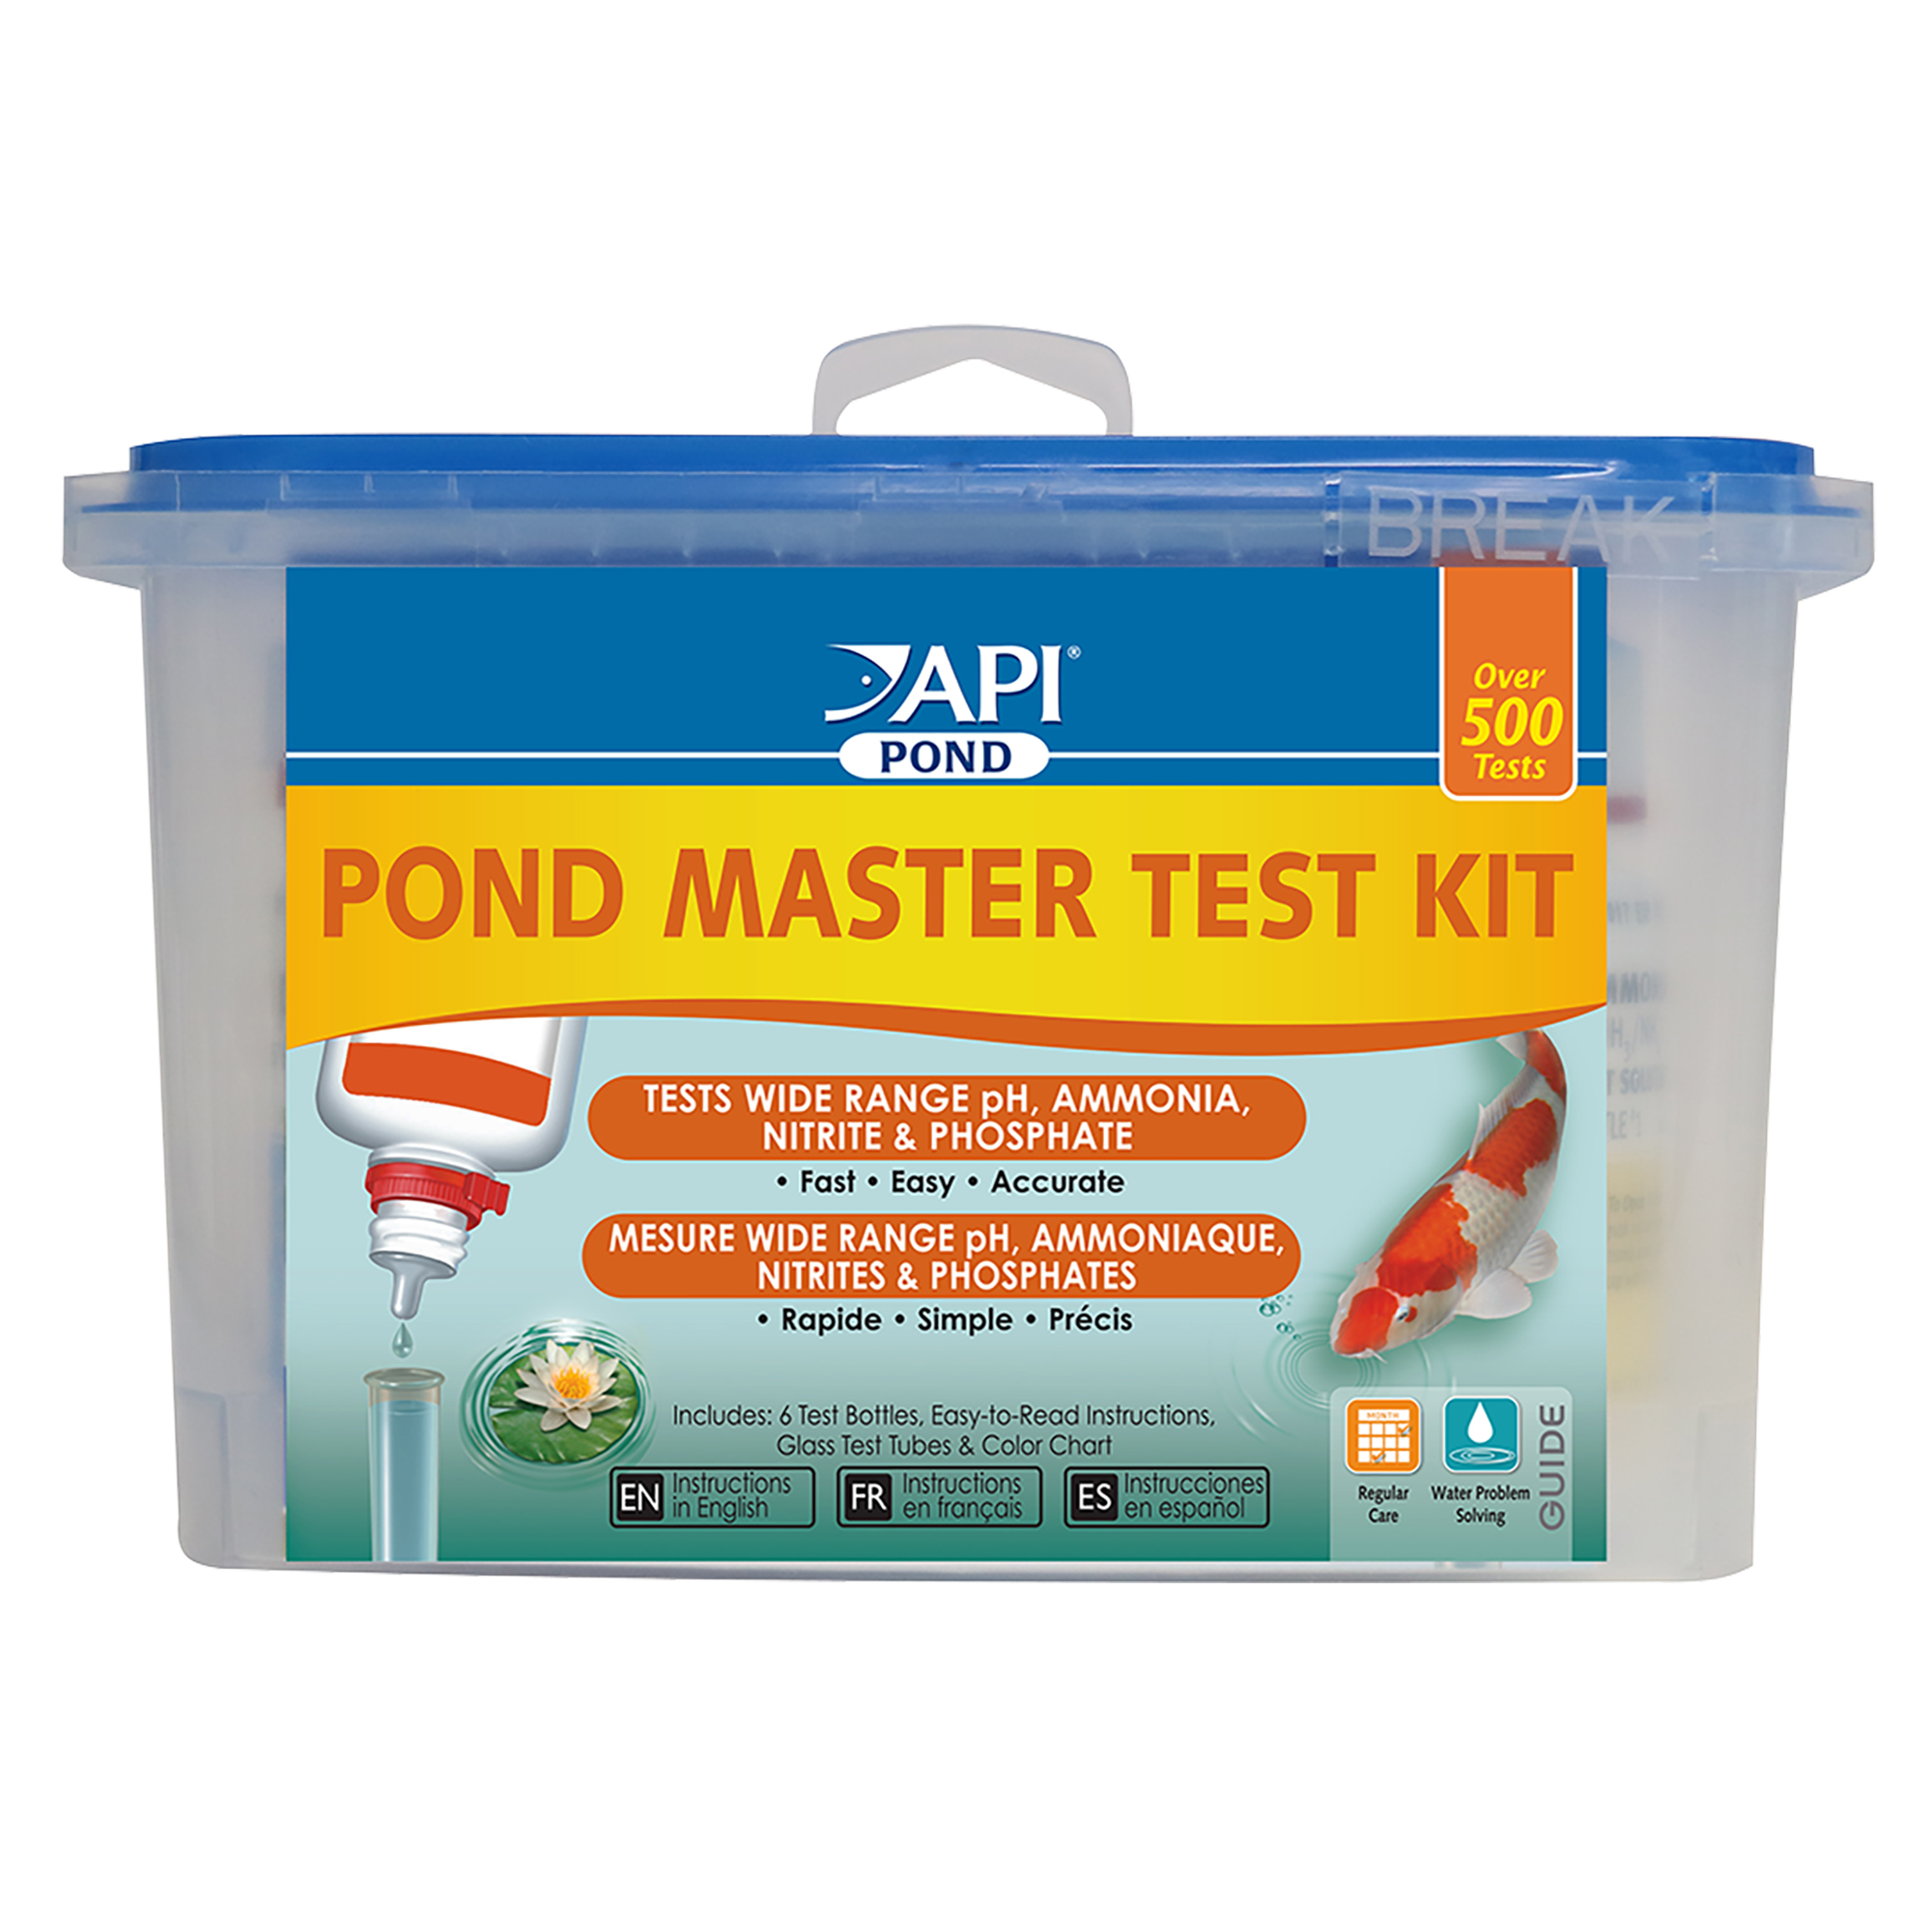 POND MASTER TEST KIT